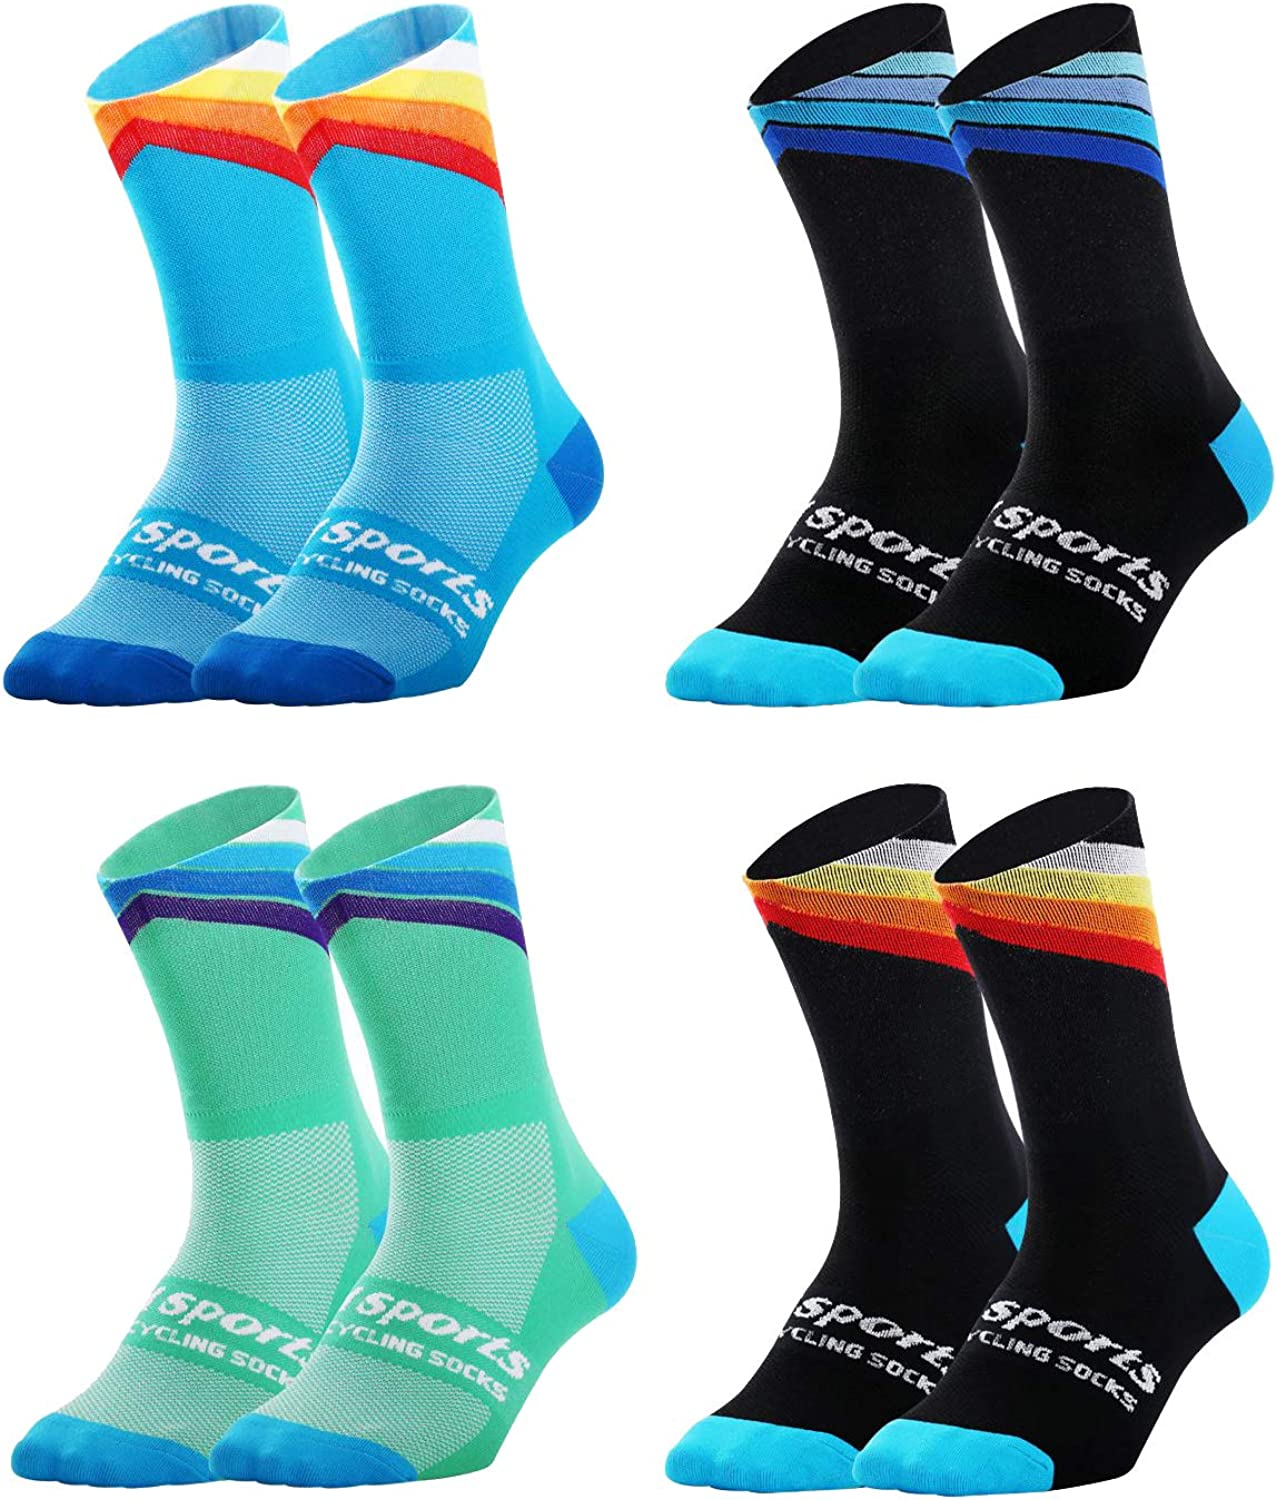 VWU Mens Womens Sports Socks Athletic Socks for Running Cycling Basketball Hiking More